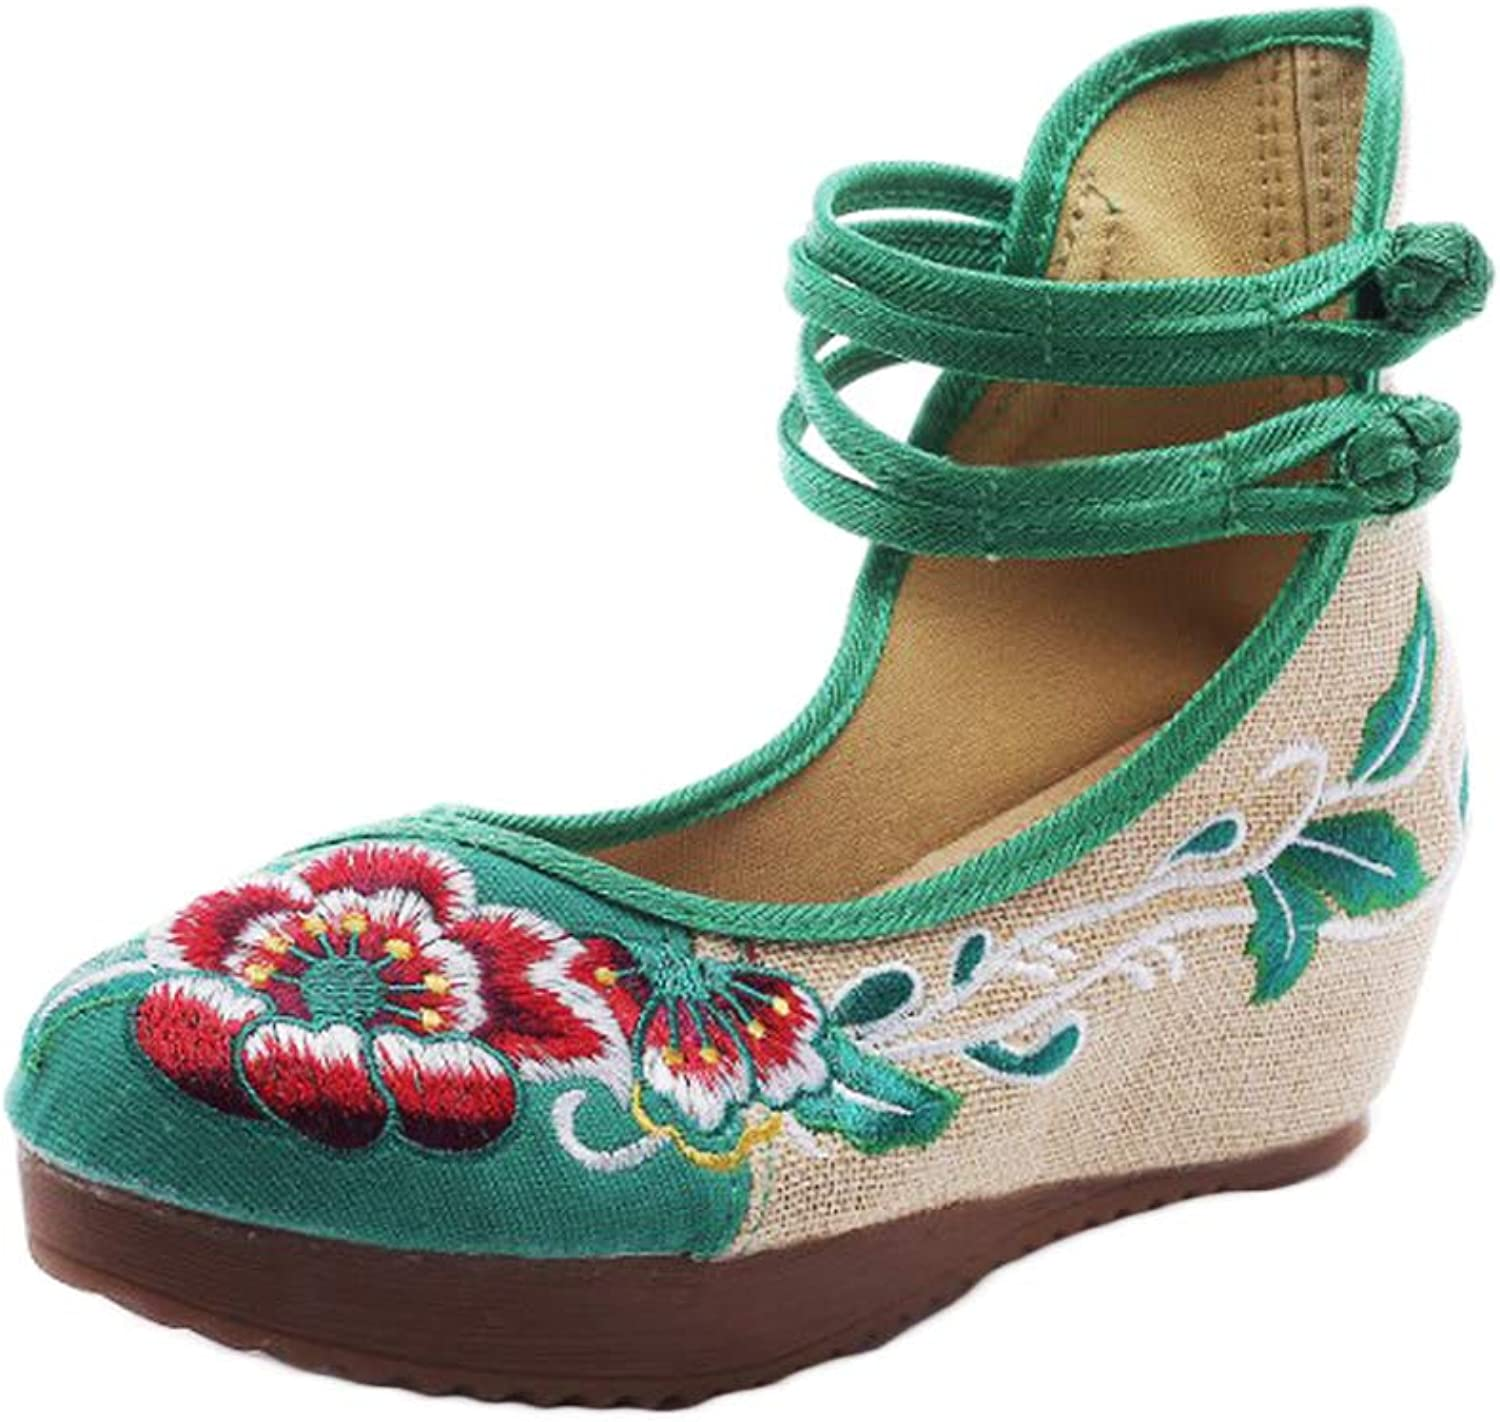 AvaCostume Women's Embroidery Floral Strappy Round Toe Platform Wedges